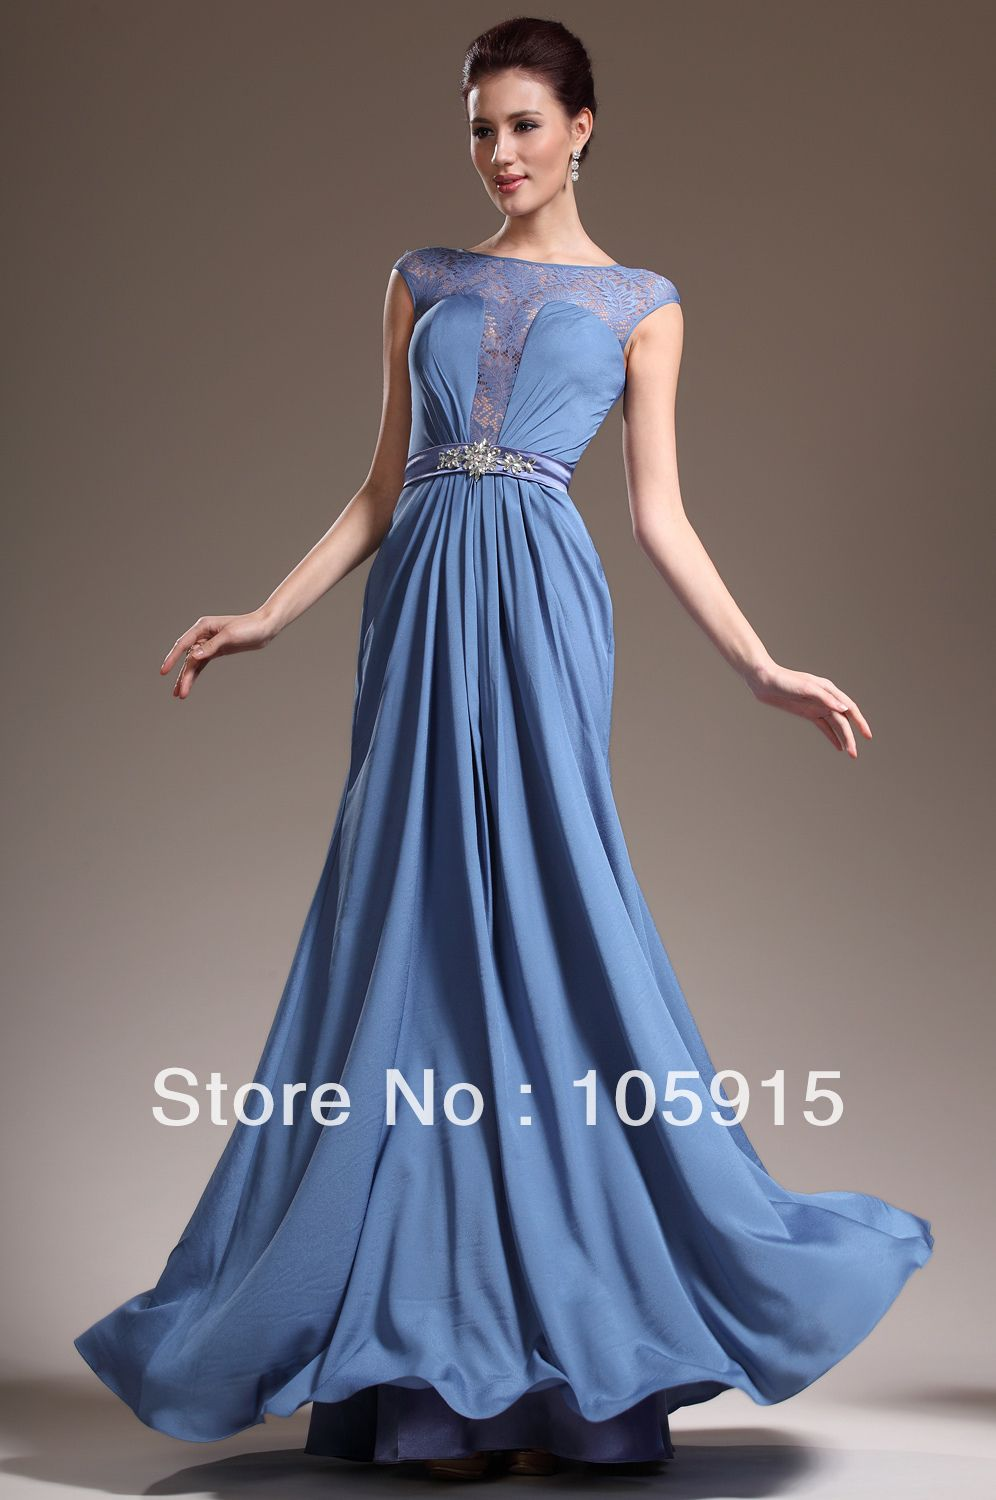 Emejing Long Dresses Dillards Pictures - Mikejaninesmith.us ...